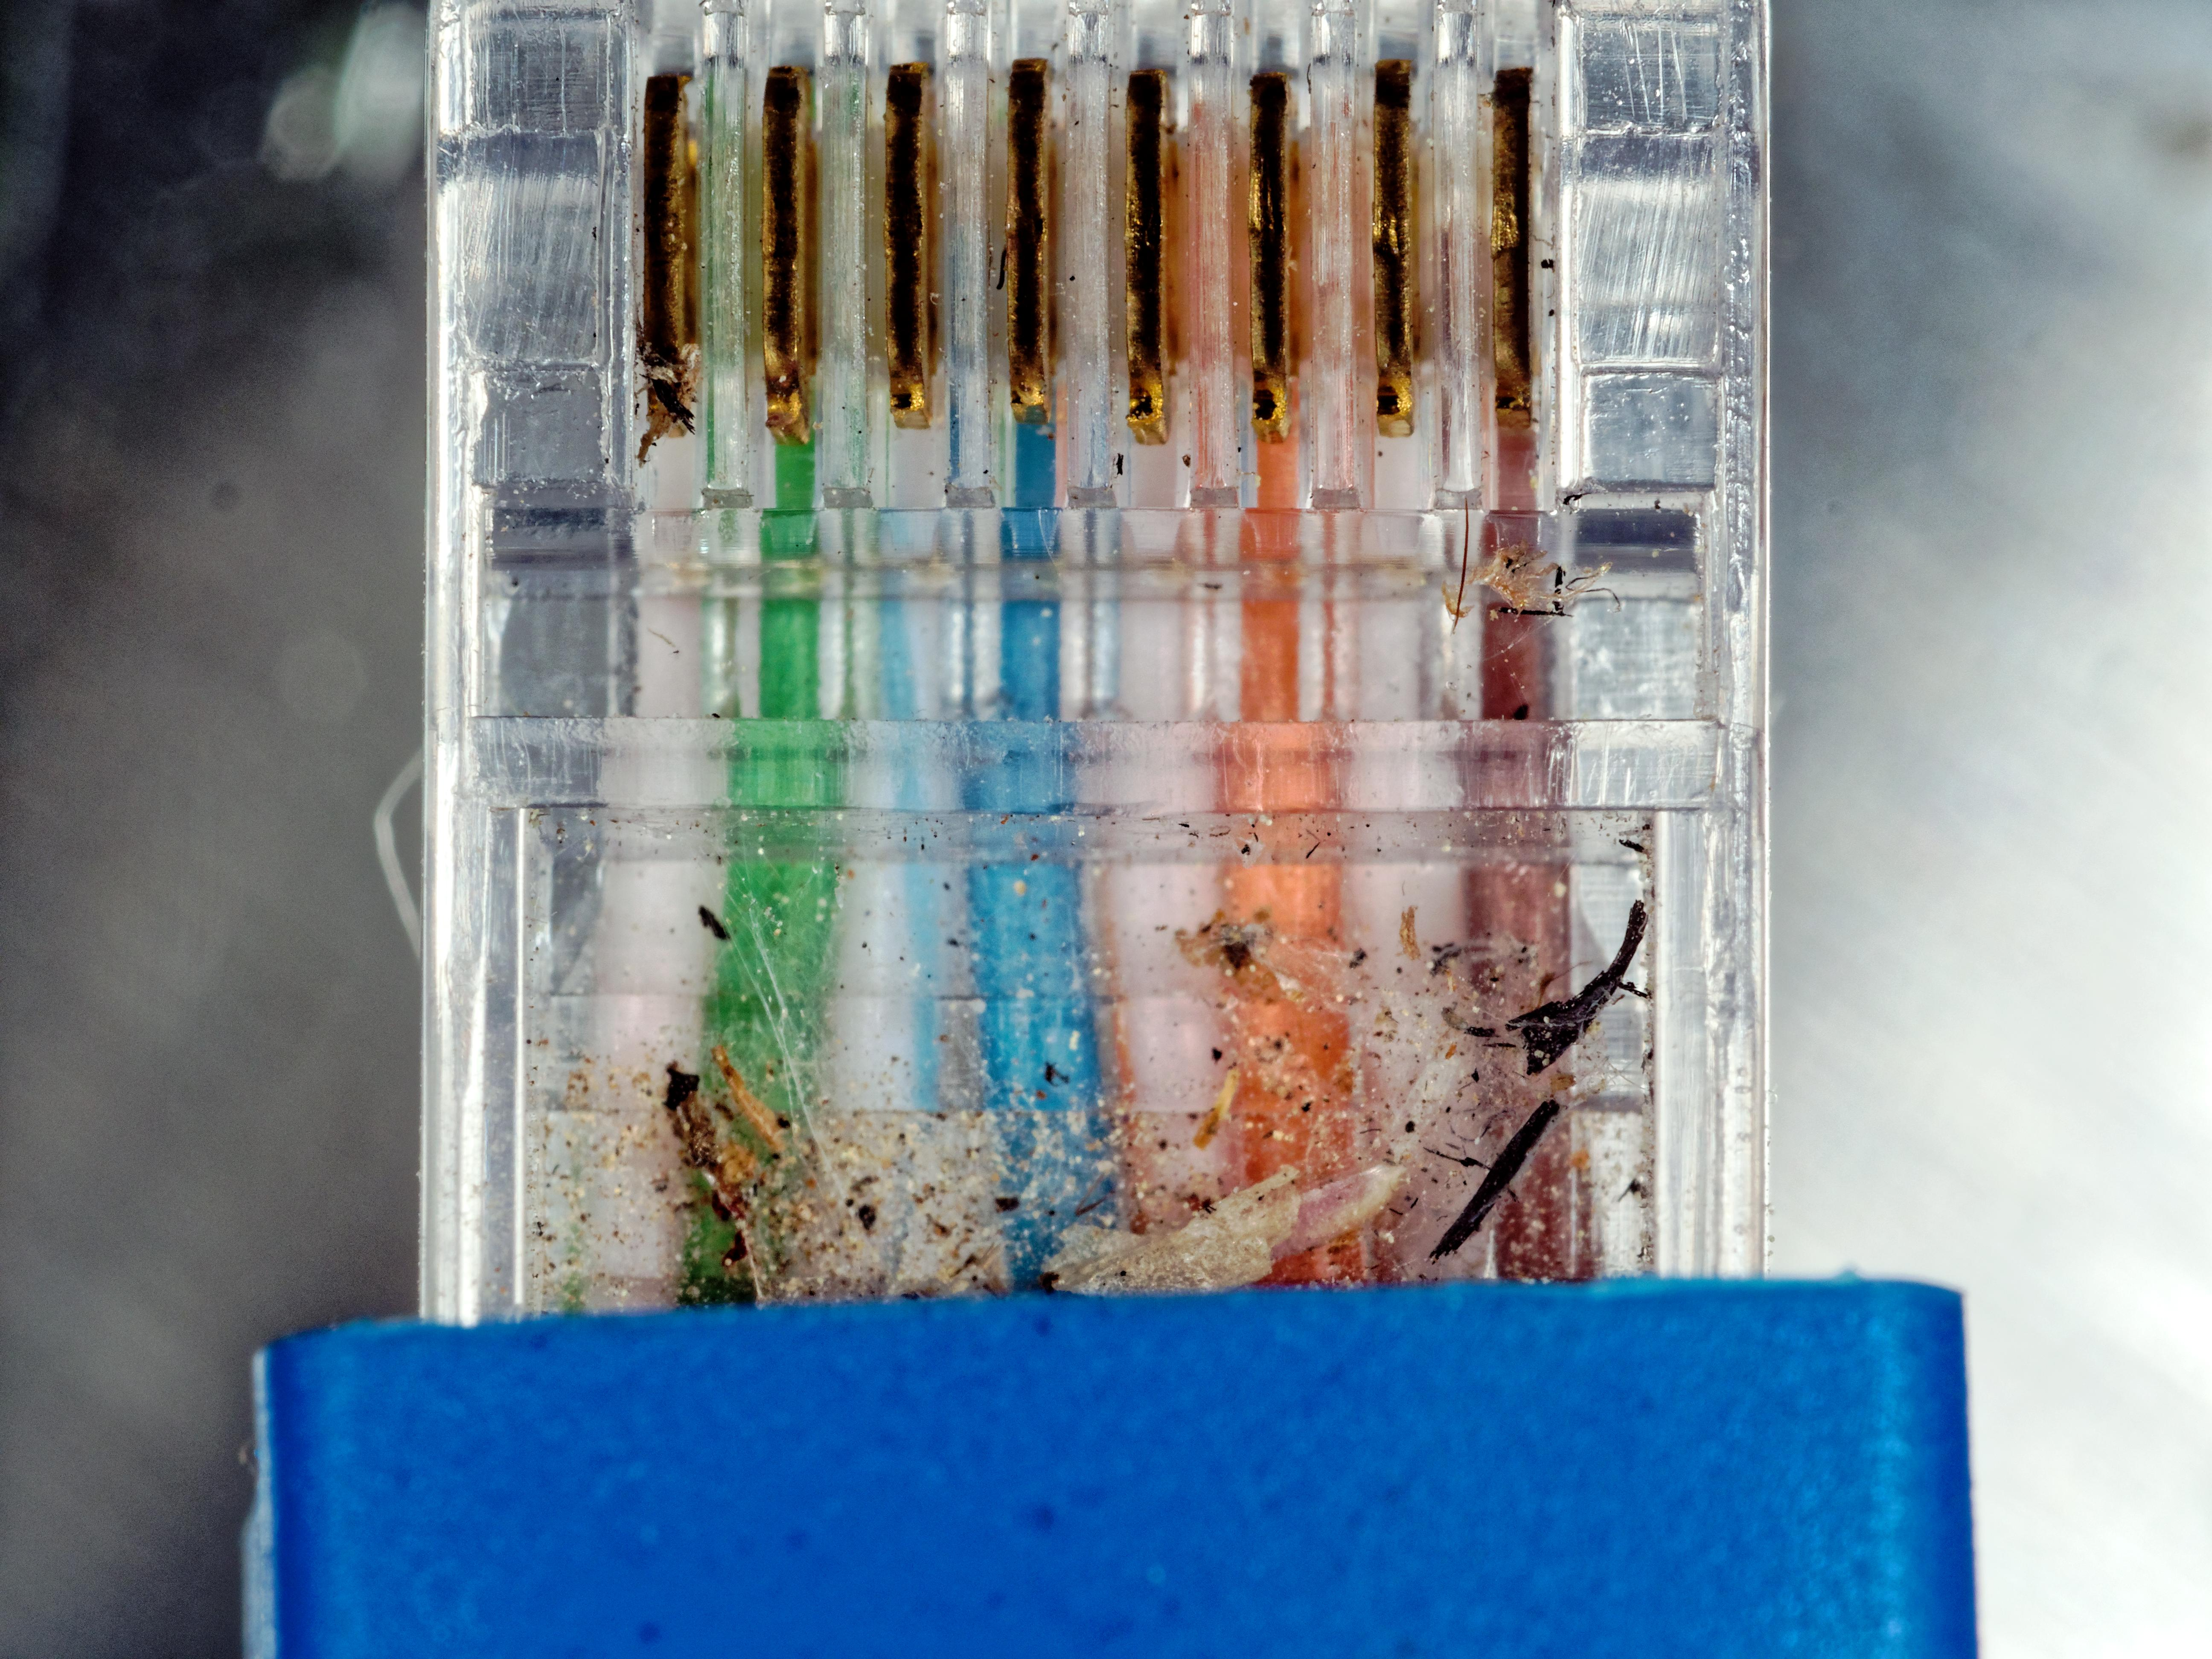 This should be RJ45-4.jpeg.  Is it missing?